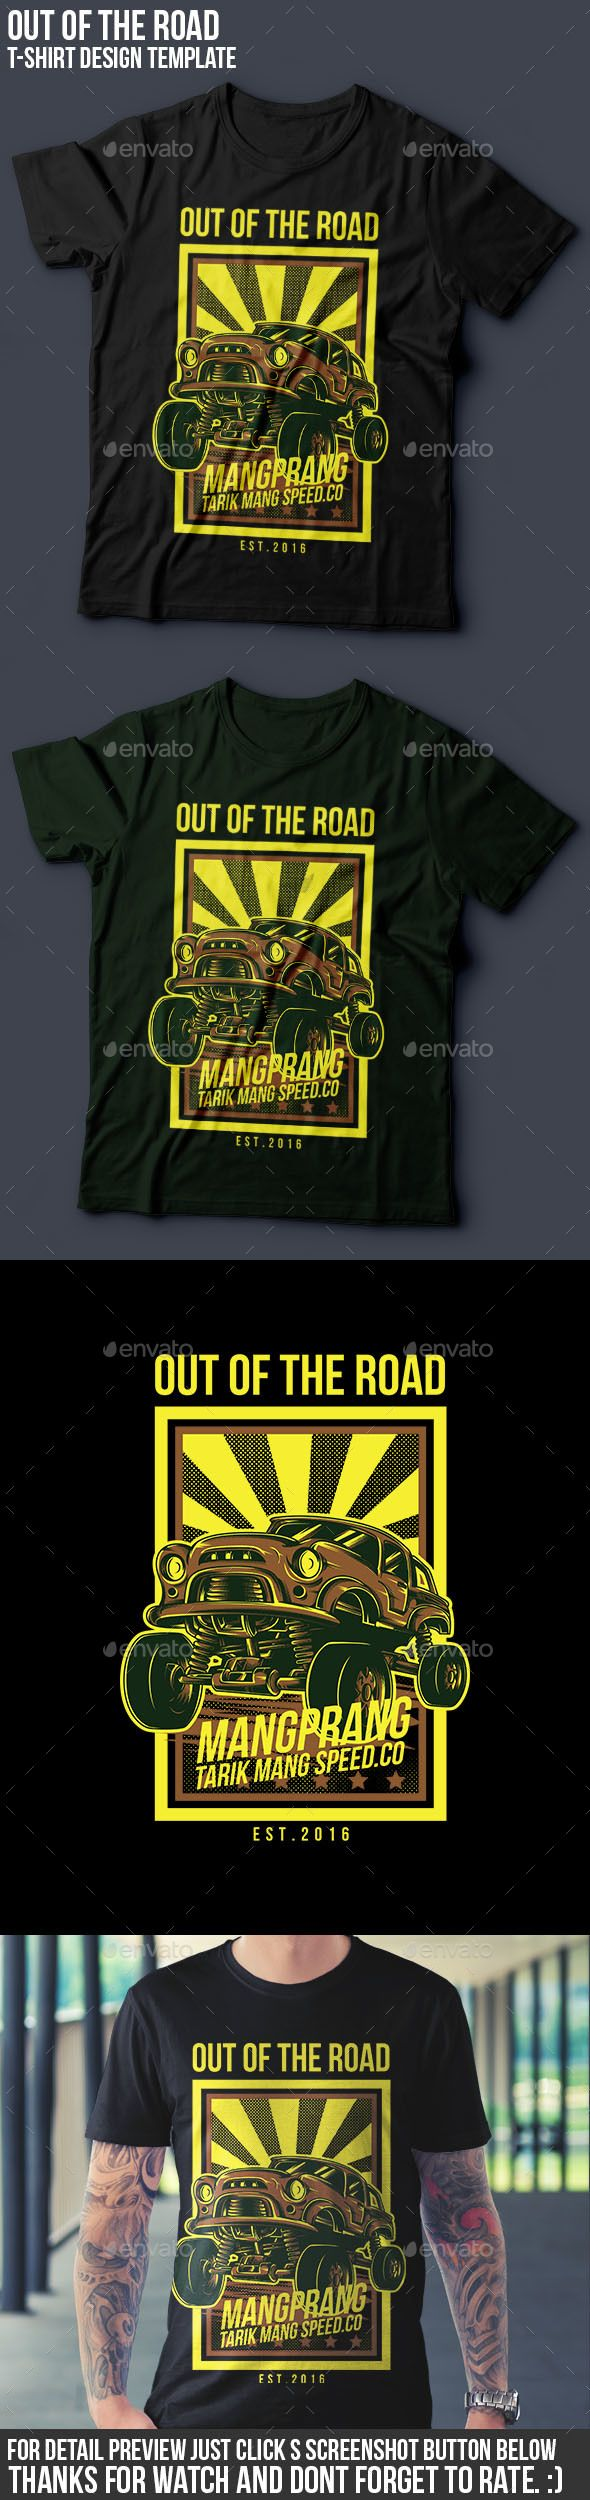 Shirt design resolution - Out Of The Road T Shirt Design Events T Shirts